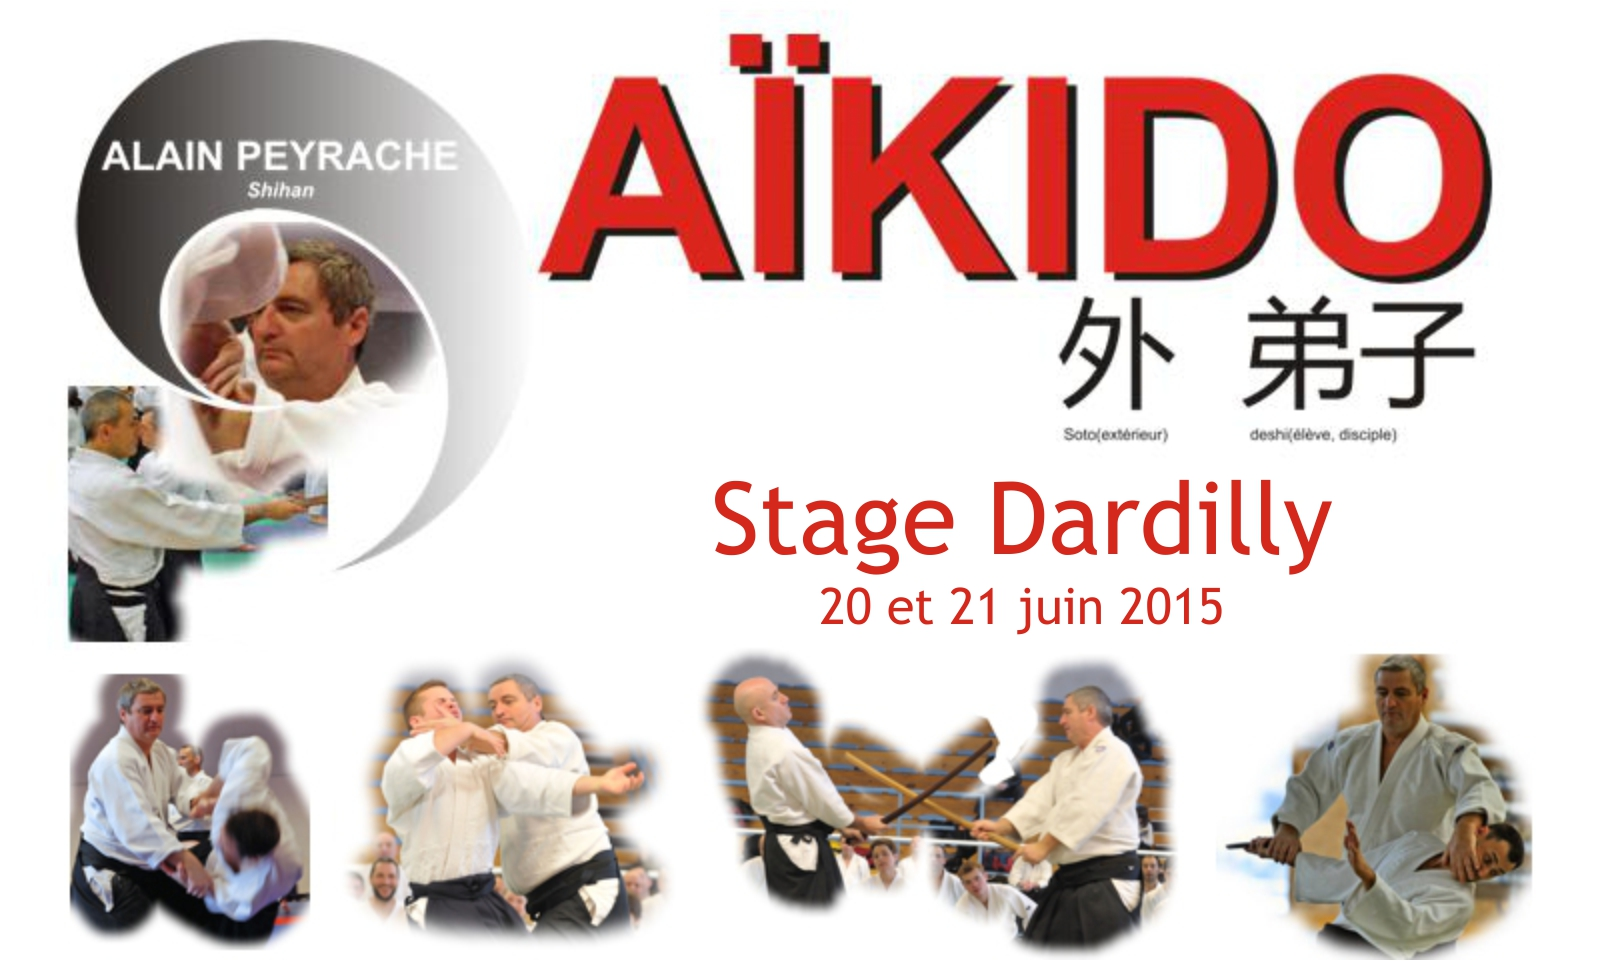 affiche stage dardilly.jpg